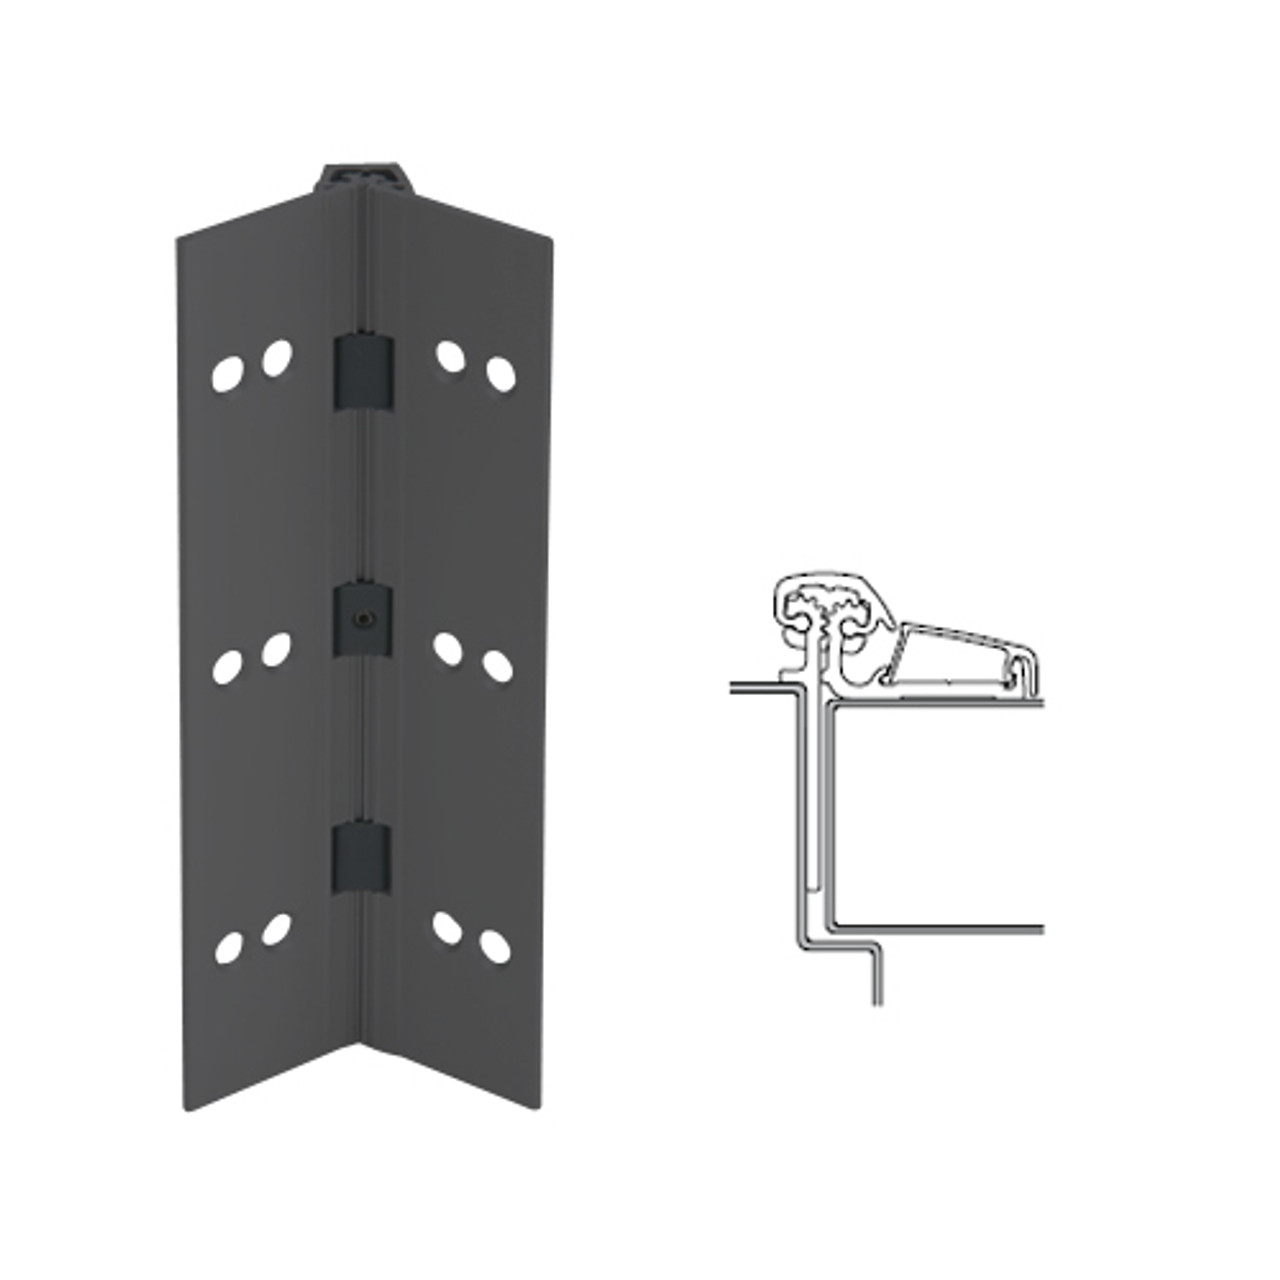 053XY-315AN-83-SECWDWD IVES Adjustable Half Surface Continuous Geared Hinges with Security Screws - Hex Pin Drive in Anodized Black